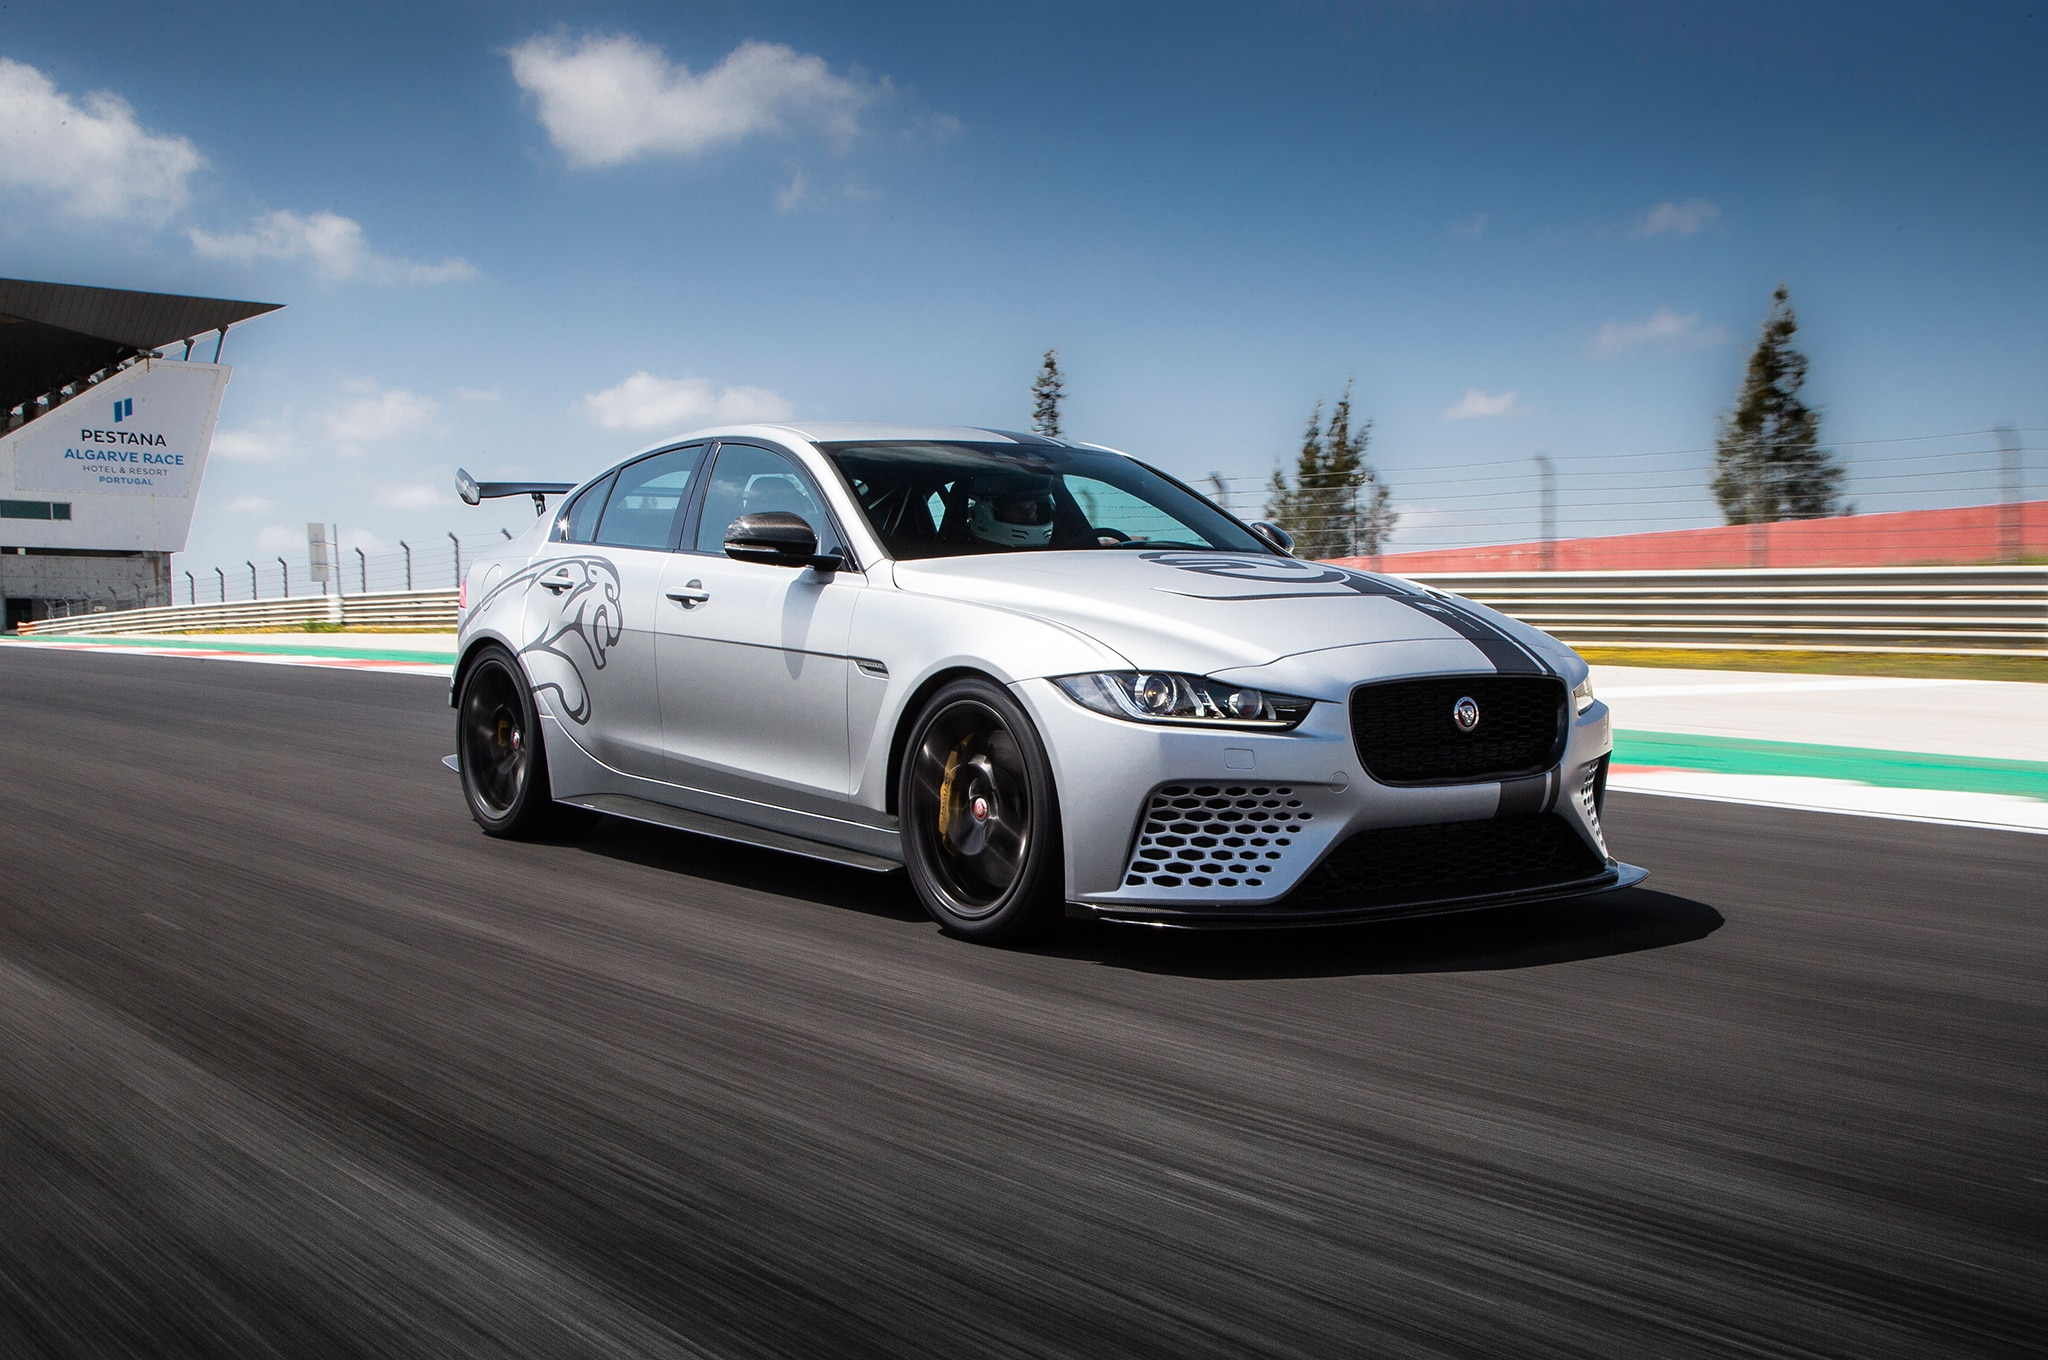 2019 Jaguar XE SV Project 8 Front Three Quarter In Motion 12 2